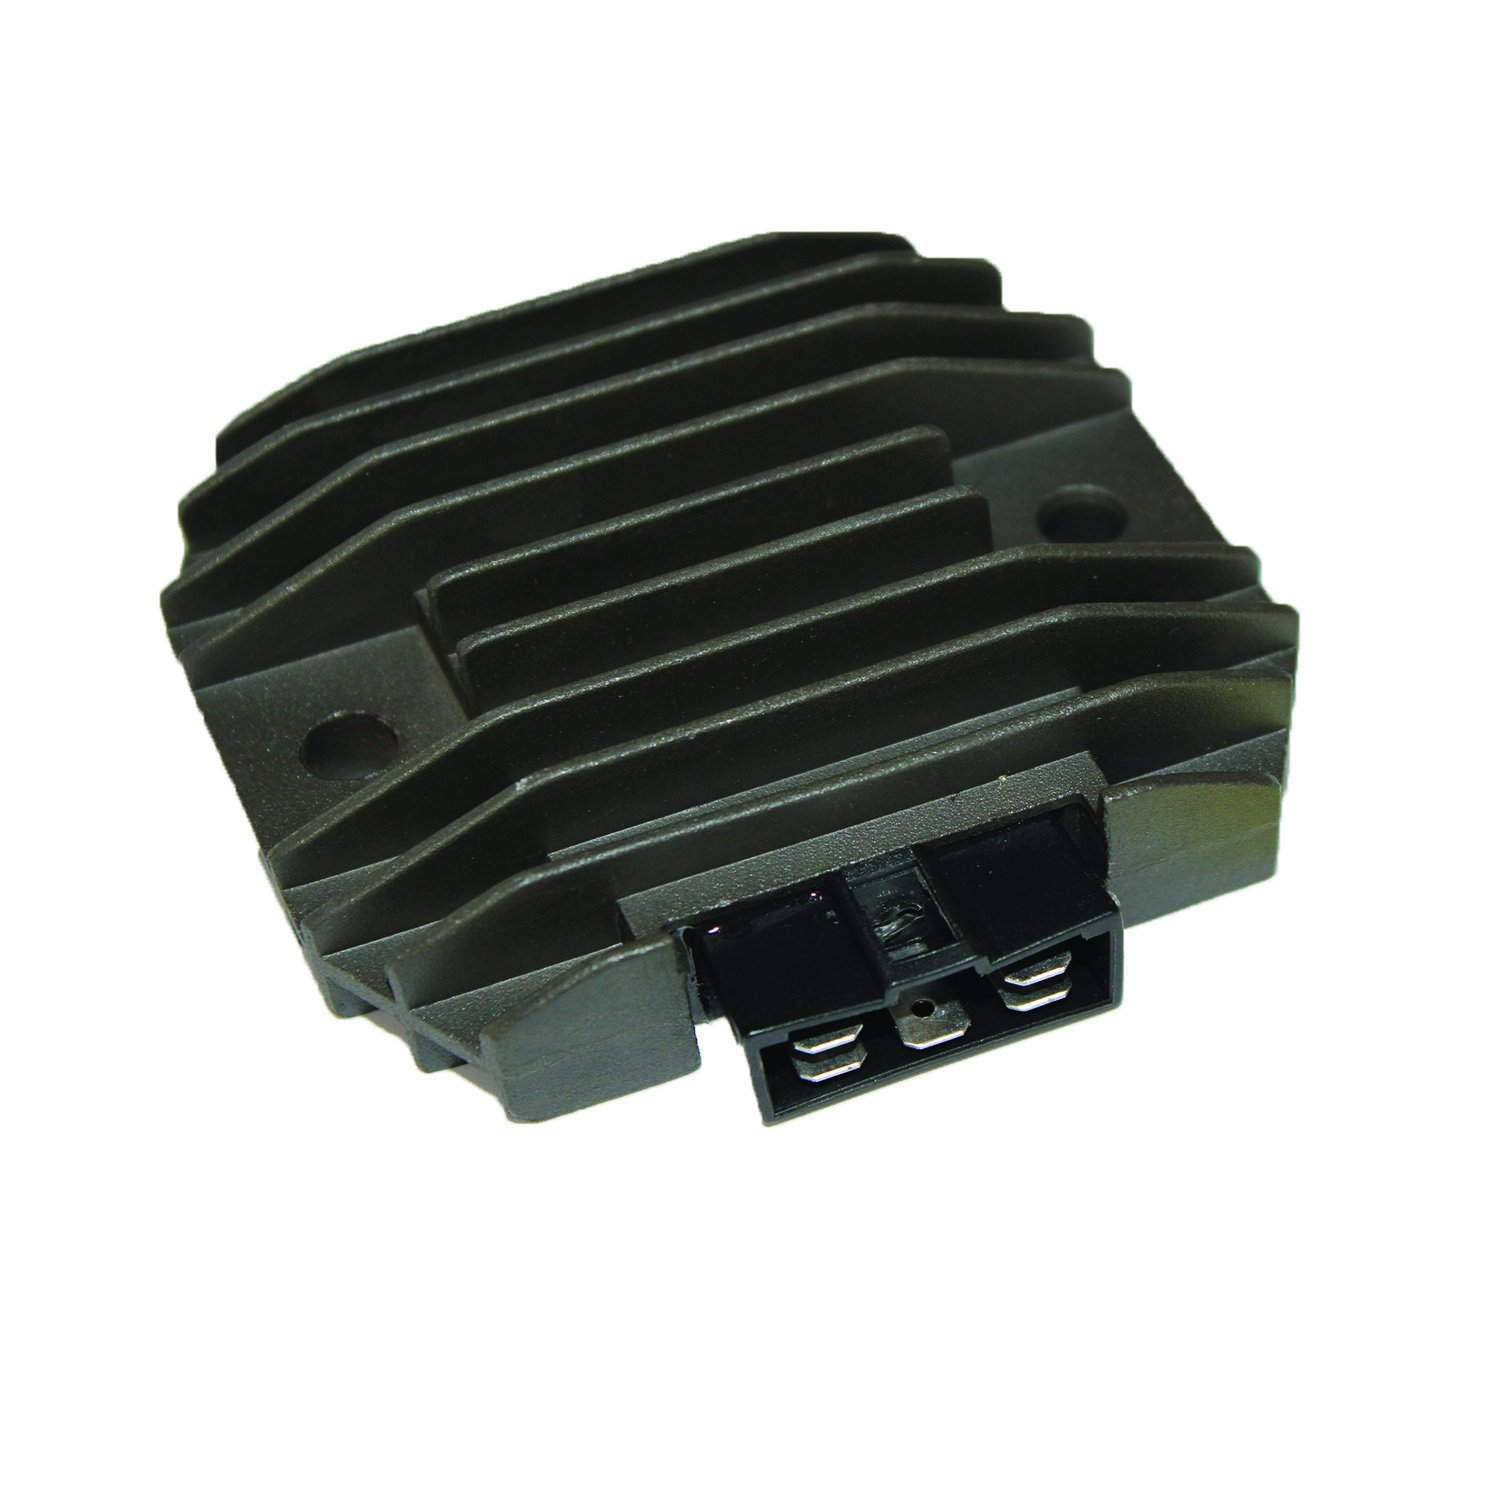 Caltric Regulator Rectifier Fits Yamaha R6 Yzfr6 1999 2000 Starter Relay Wiring Diagram 2001 2002 Motorcycle Stator New Sports Outdoors